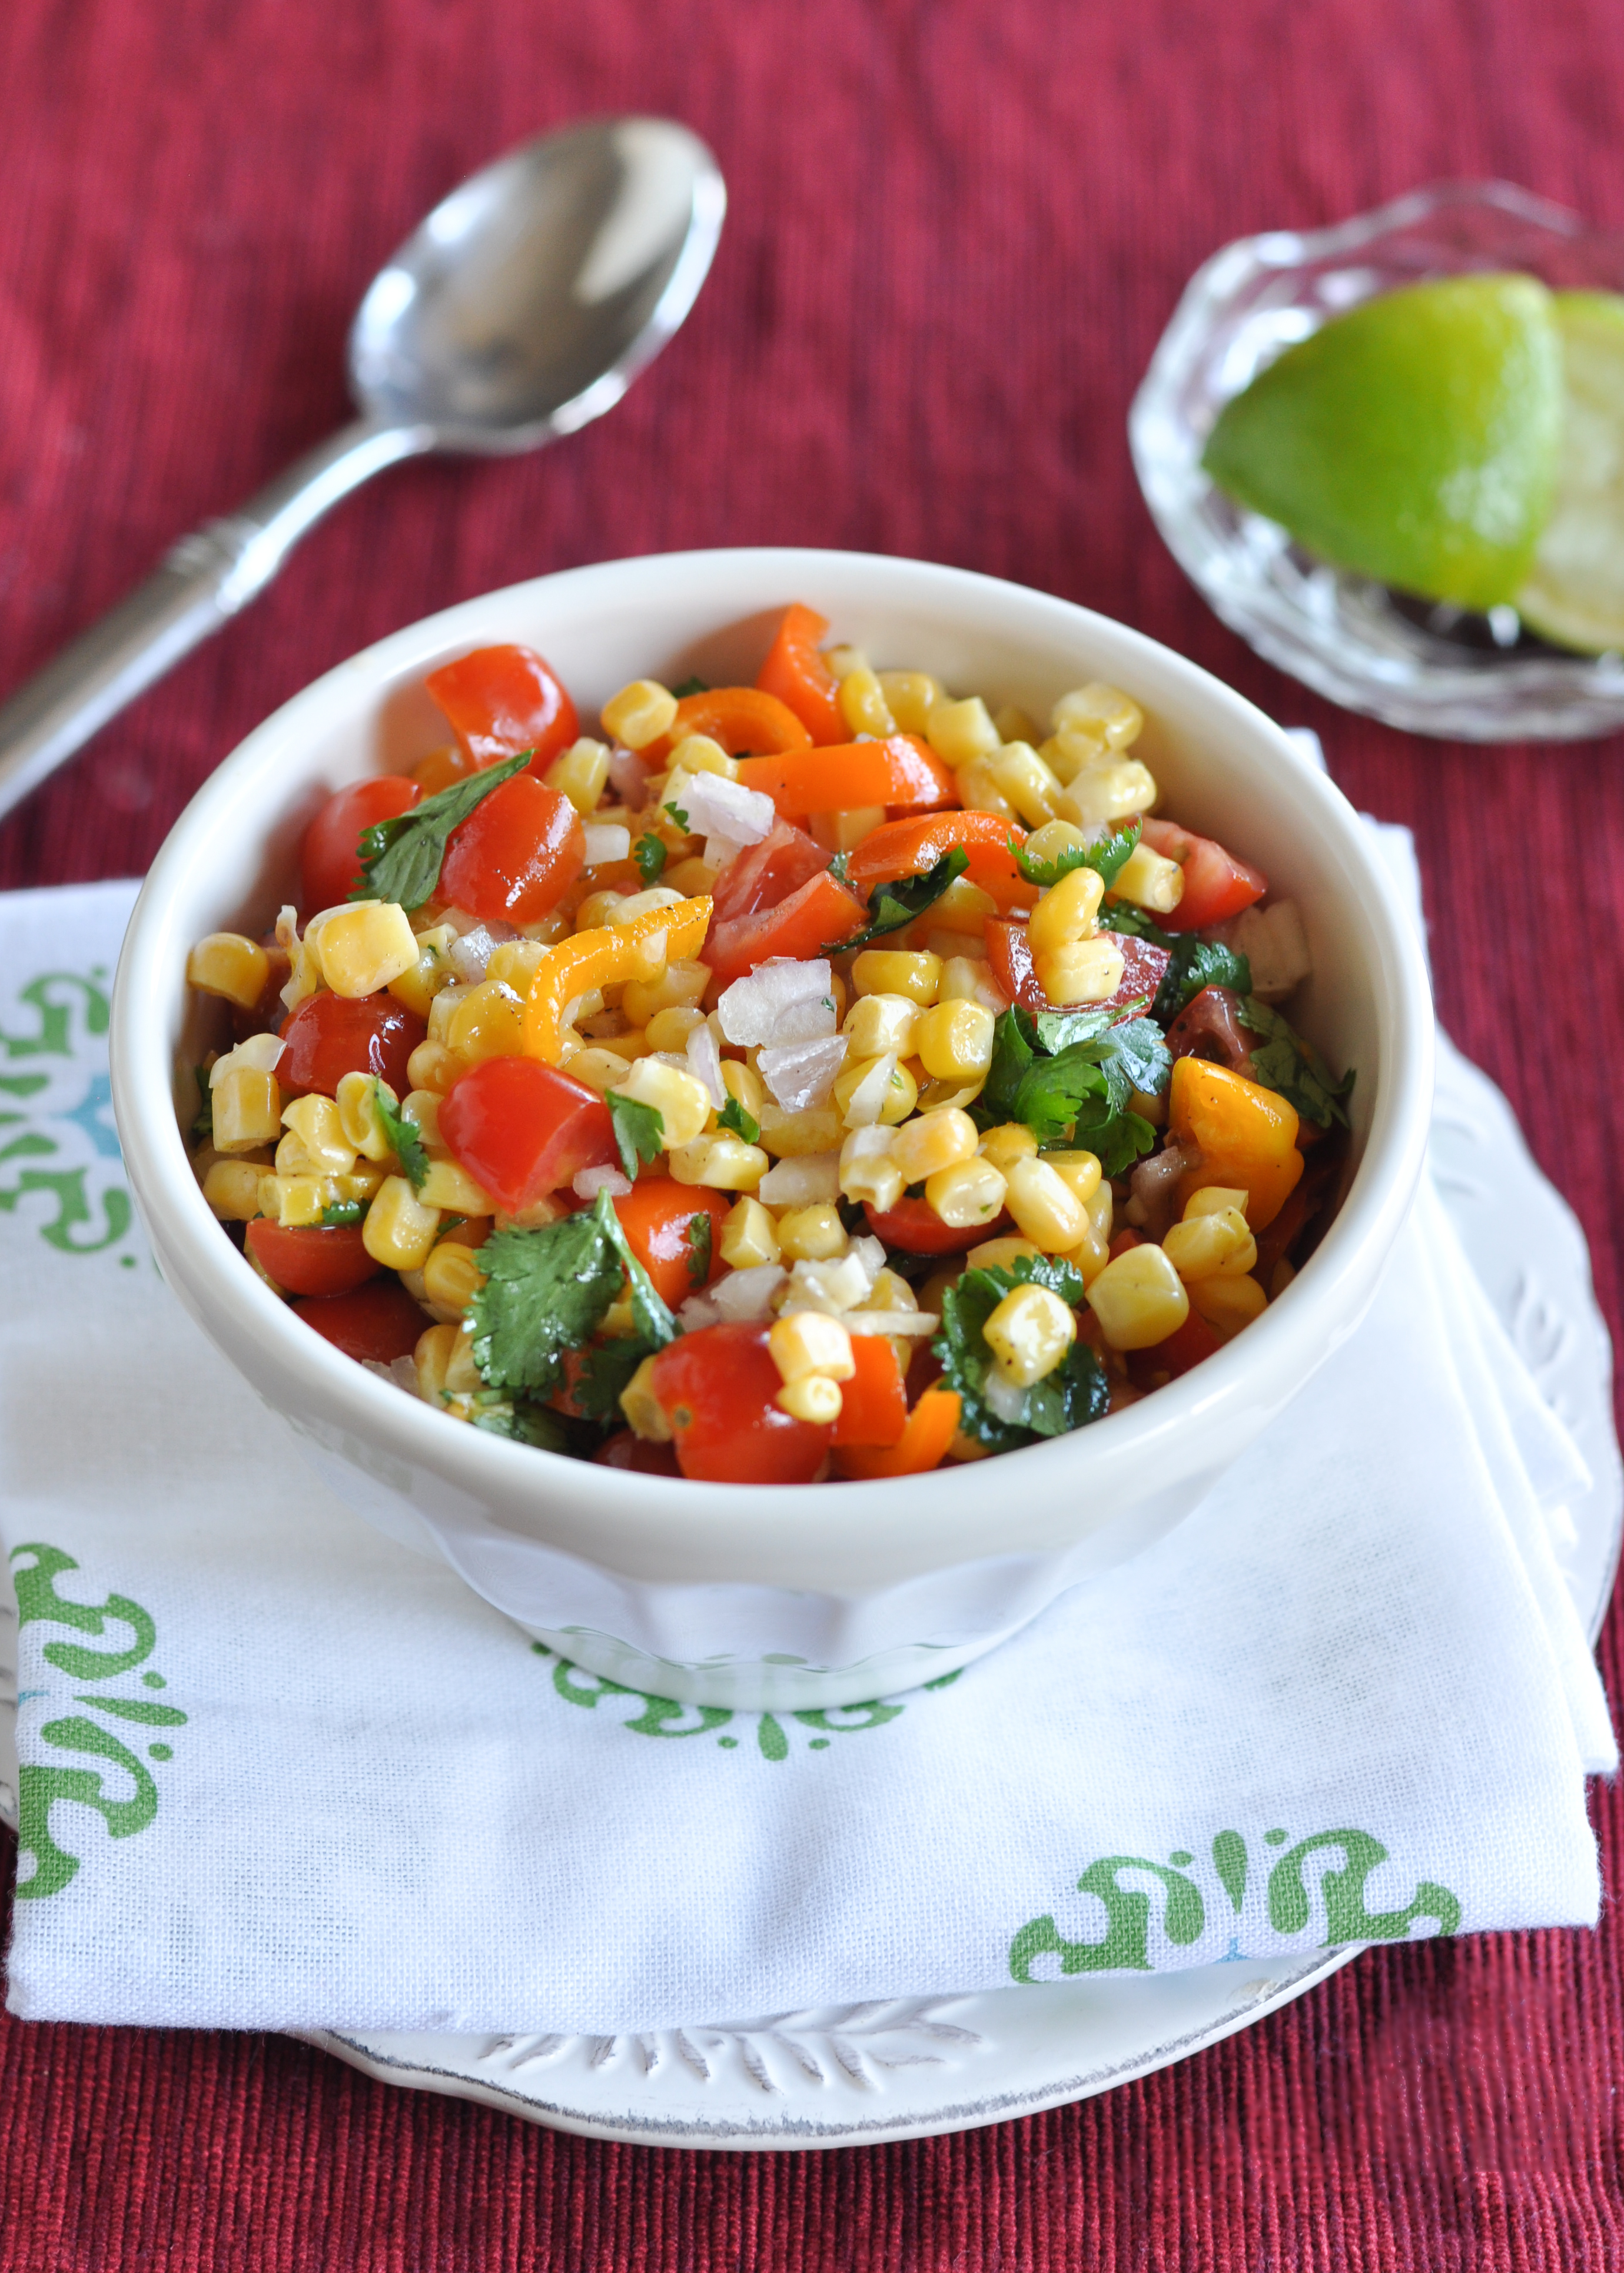 Corn and Tomato Salad | www.nutritiouseats.com